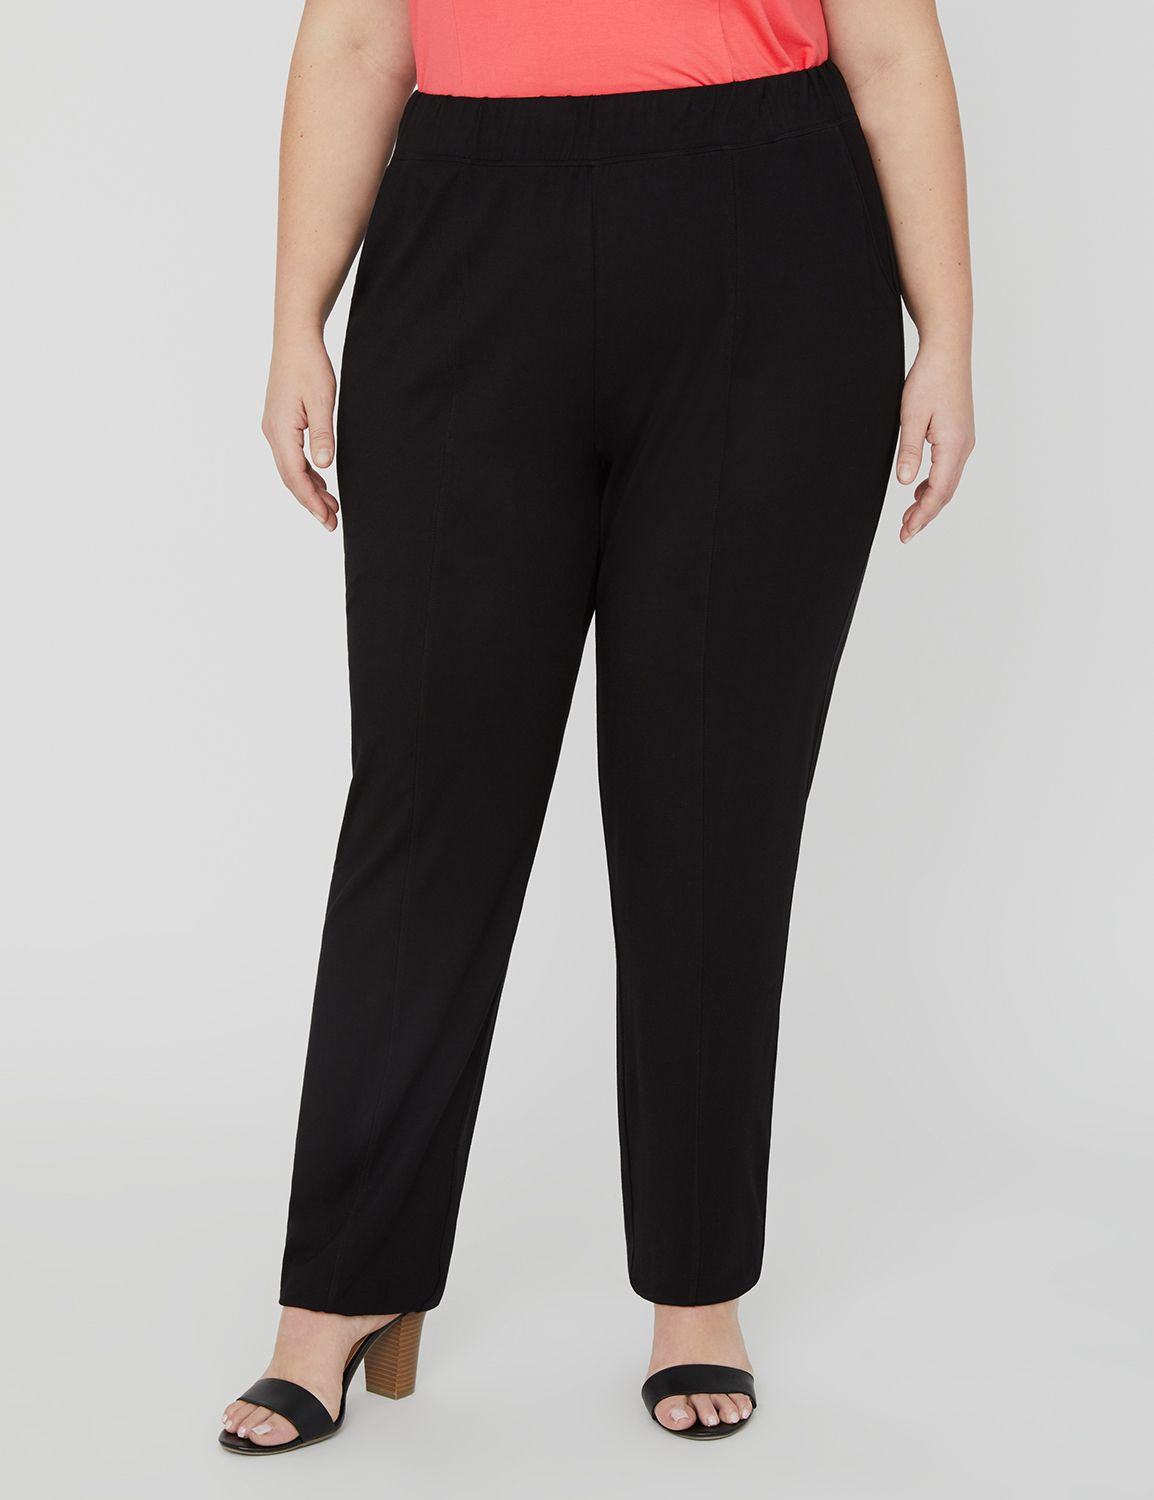 AnyWear Straight-Leg Pant 1088660 Anywear Rayon Span Straight MP-300094801